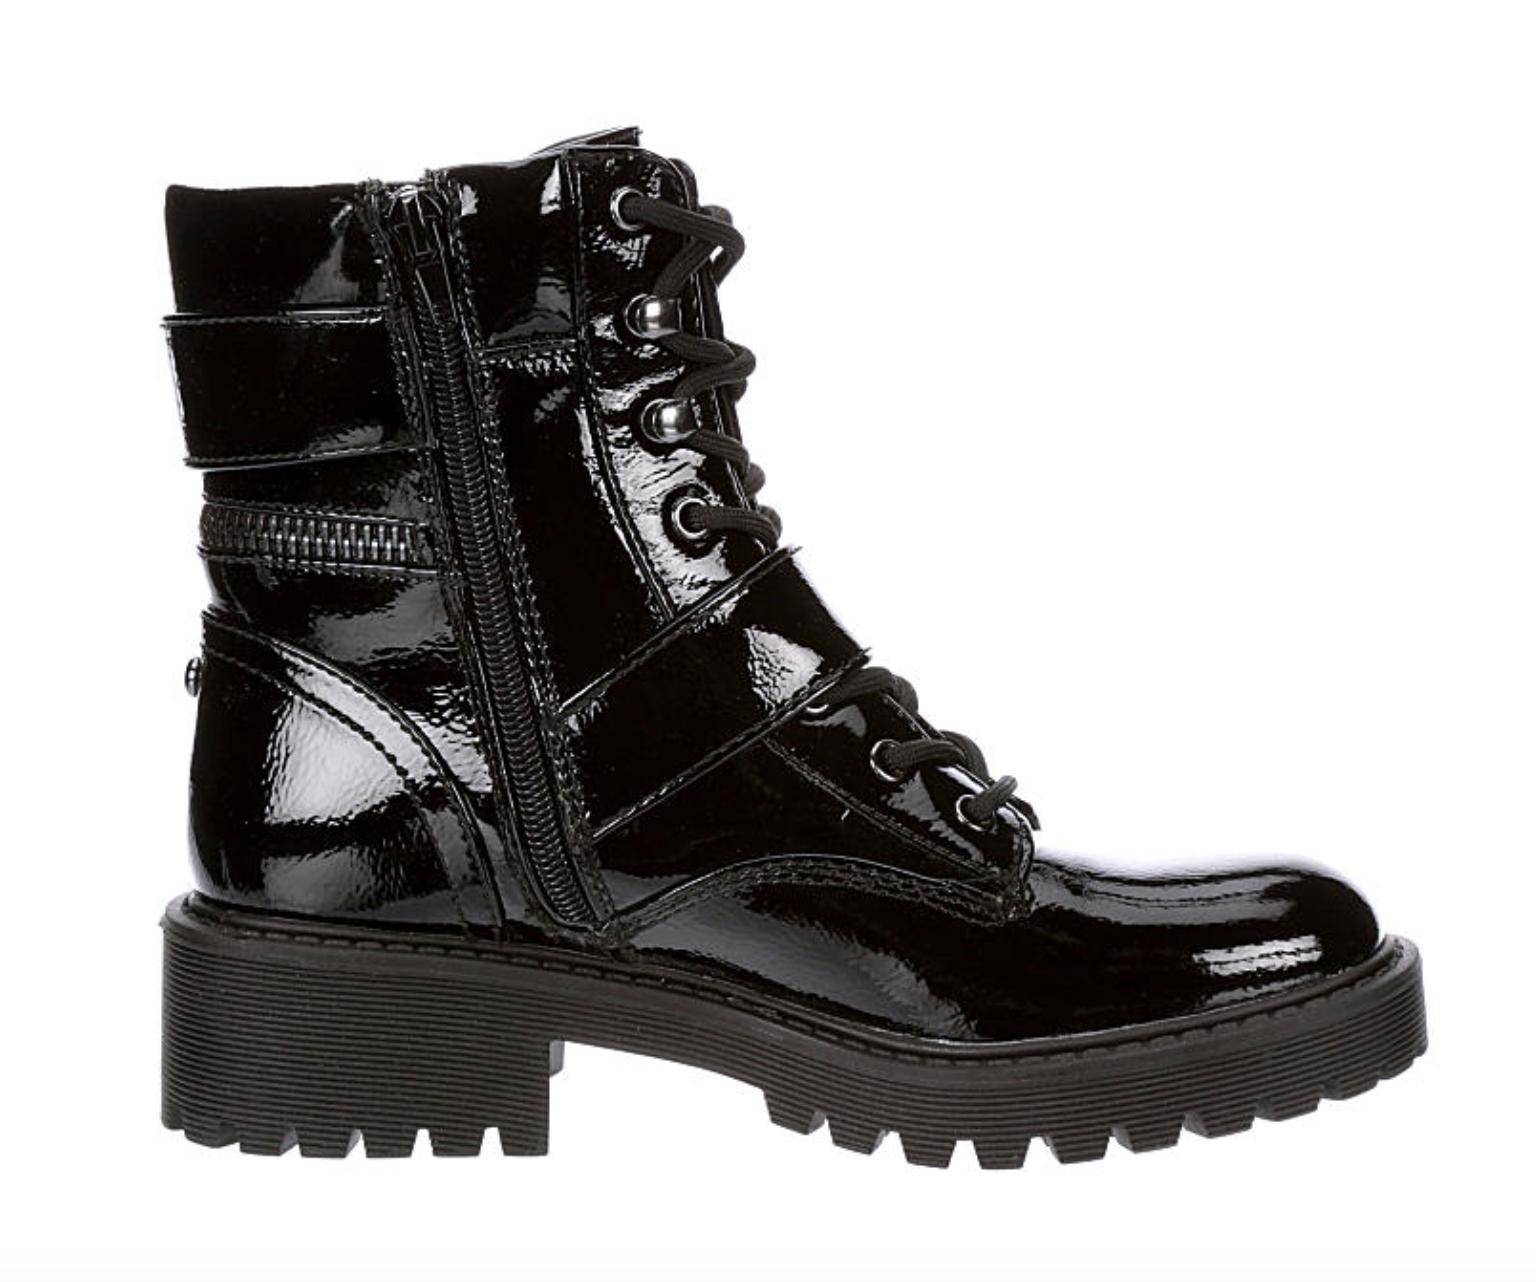 New Patent Slayder Womens Boots adjustable buckles Black 6